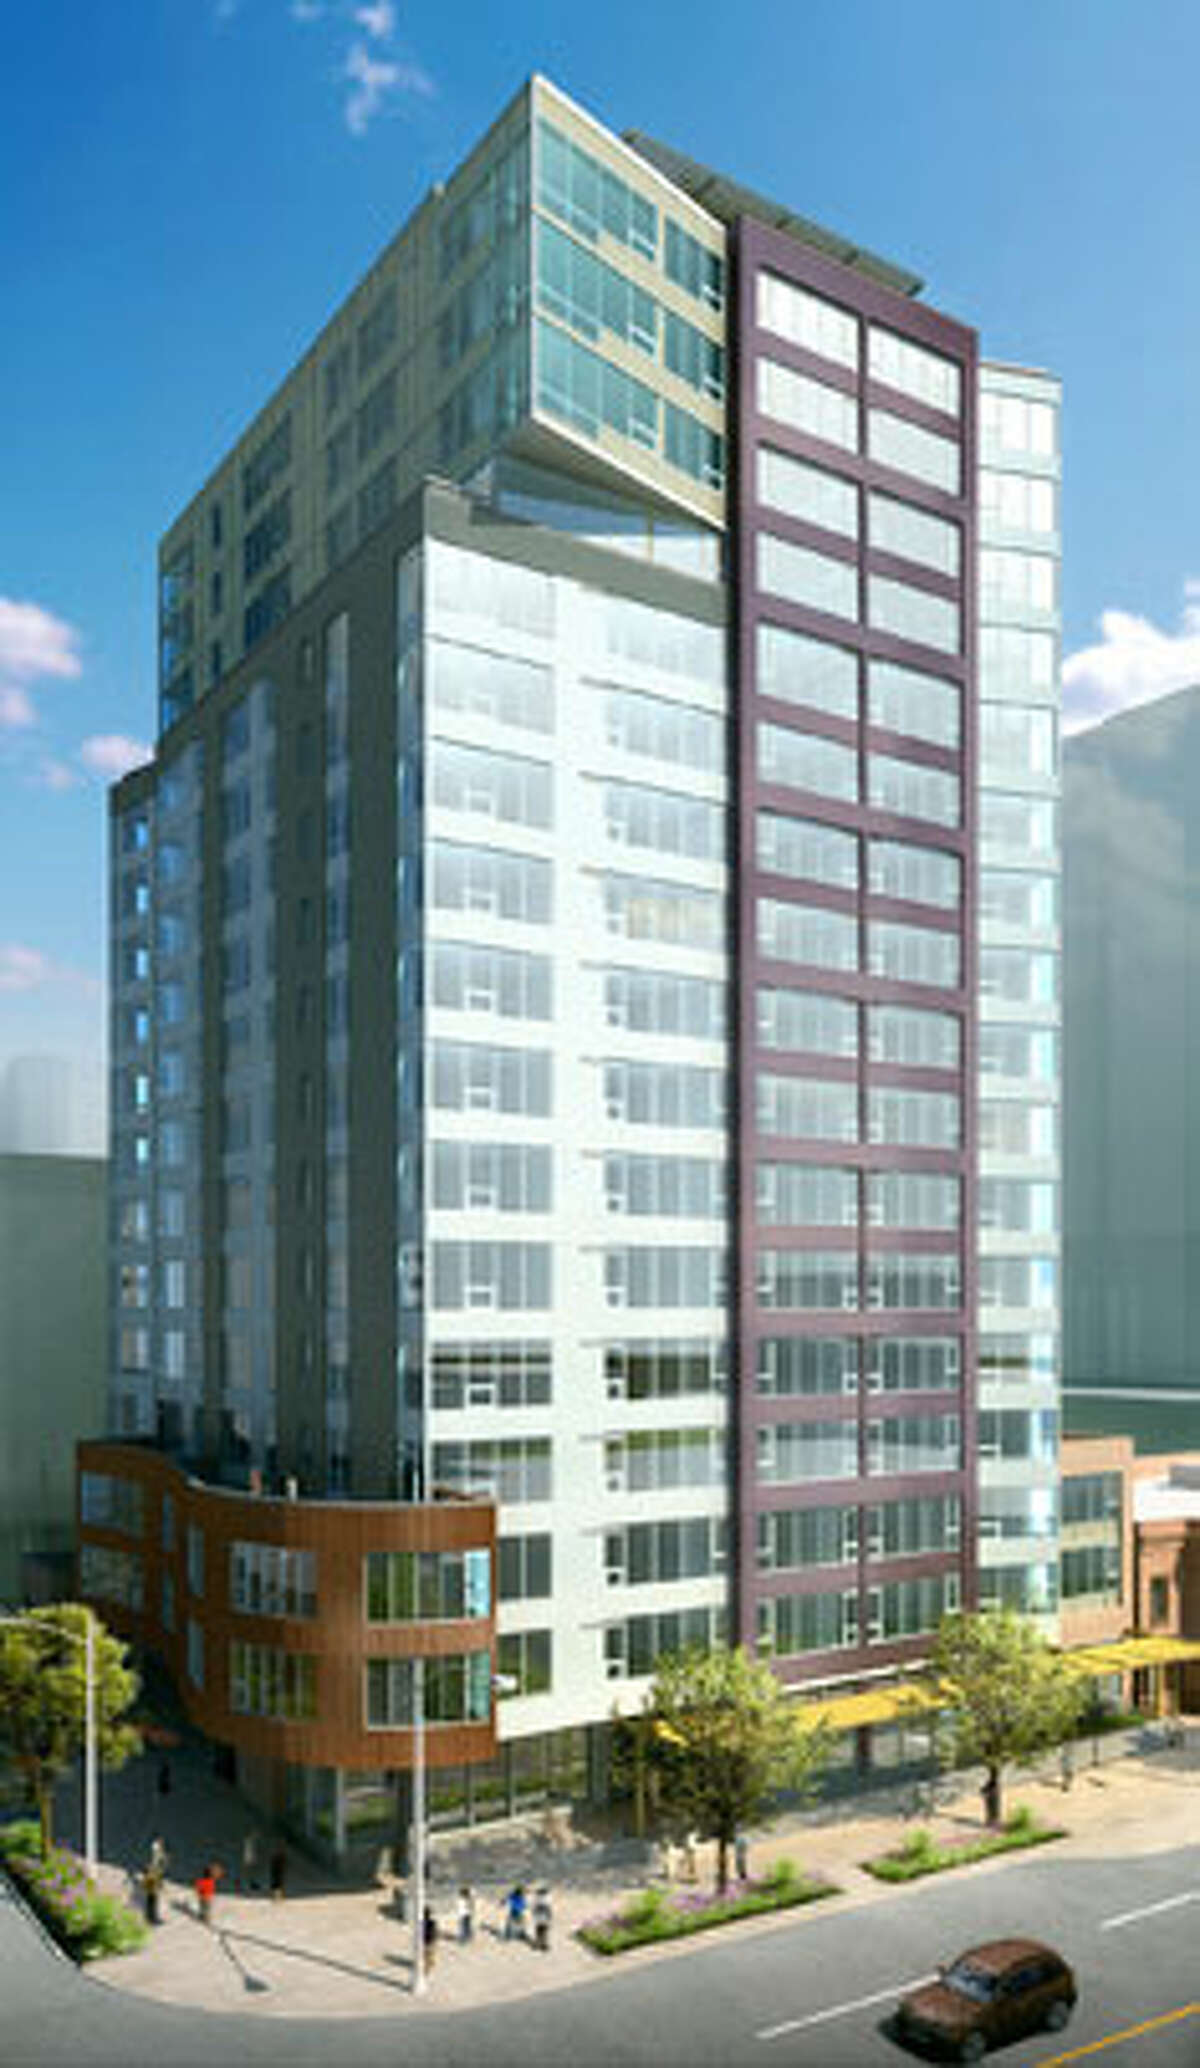 A rendering of Alto, a 17-story, 184-unit apartment building under construction in Belltown.